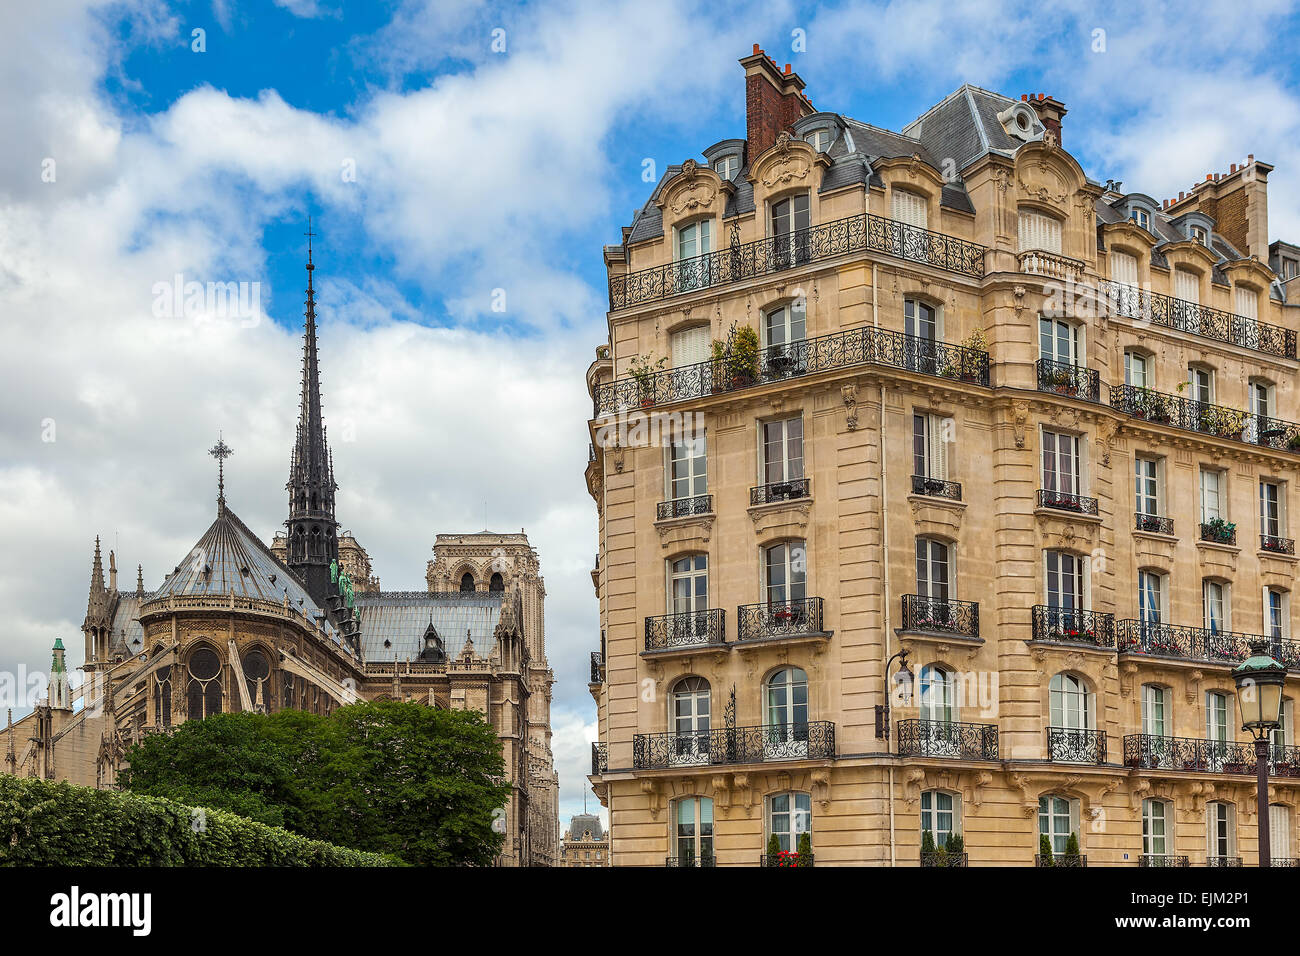 View on typical parisian building as Notre Dame de Paris Cathedral on background. - Stock Image